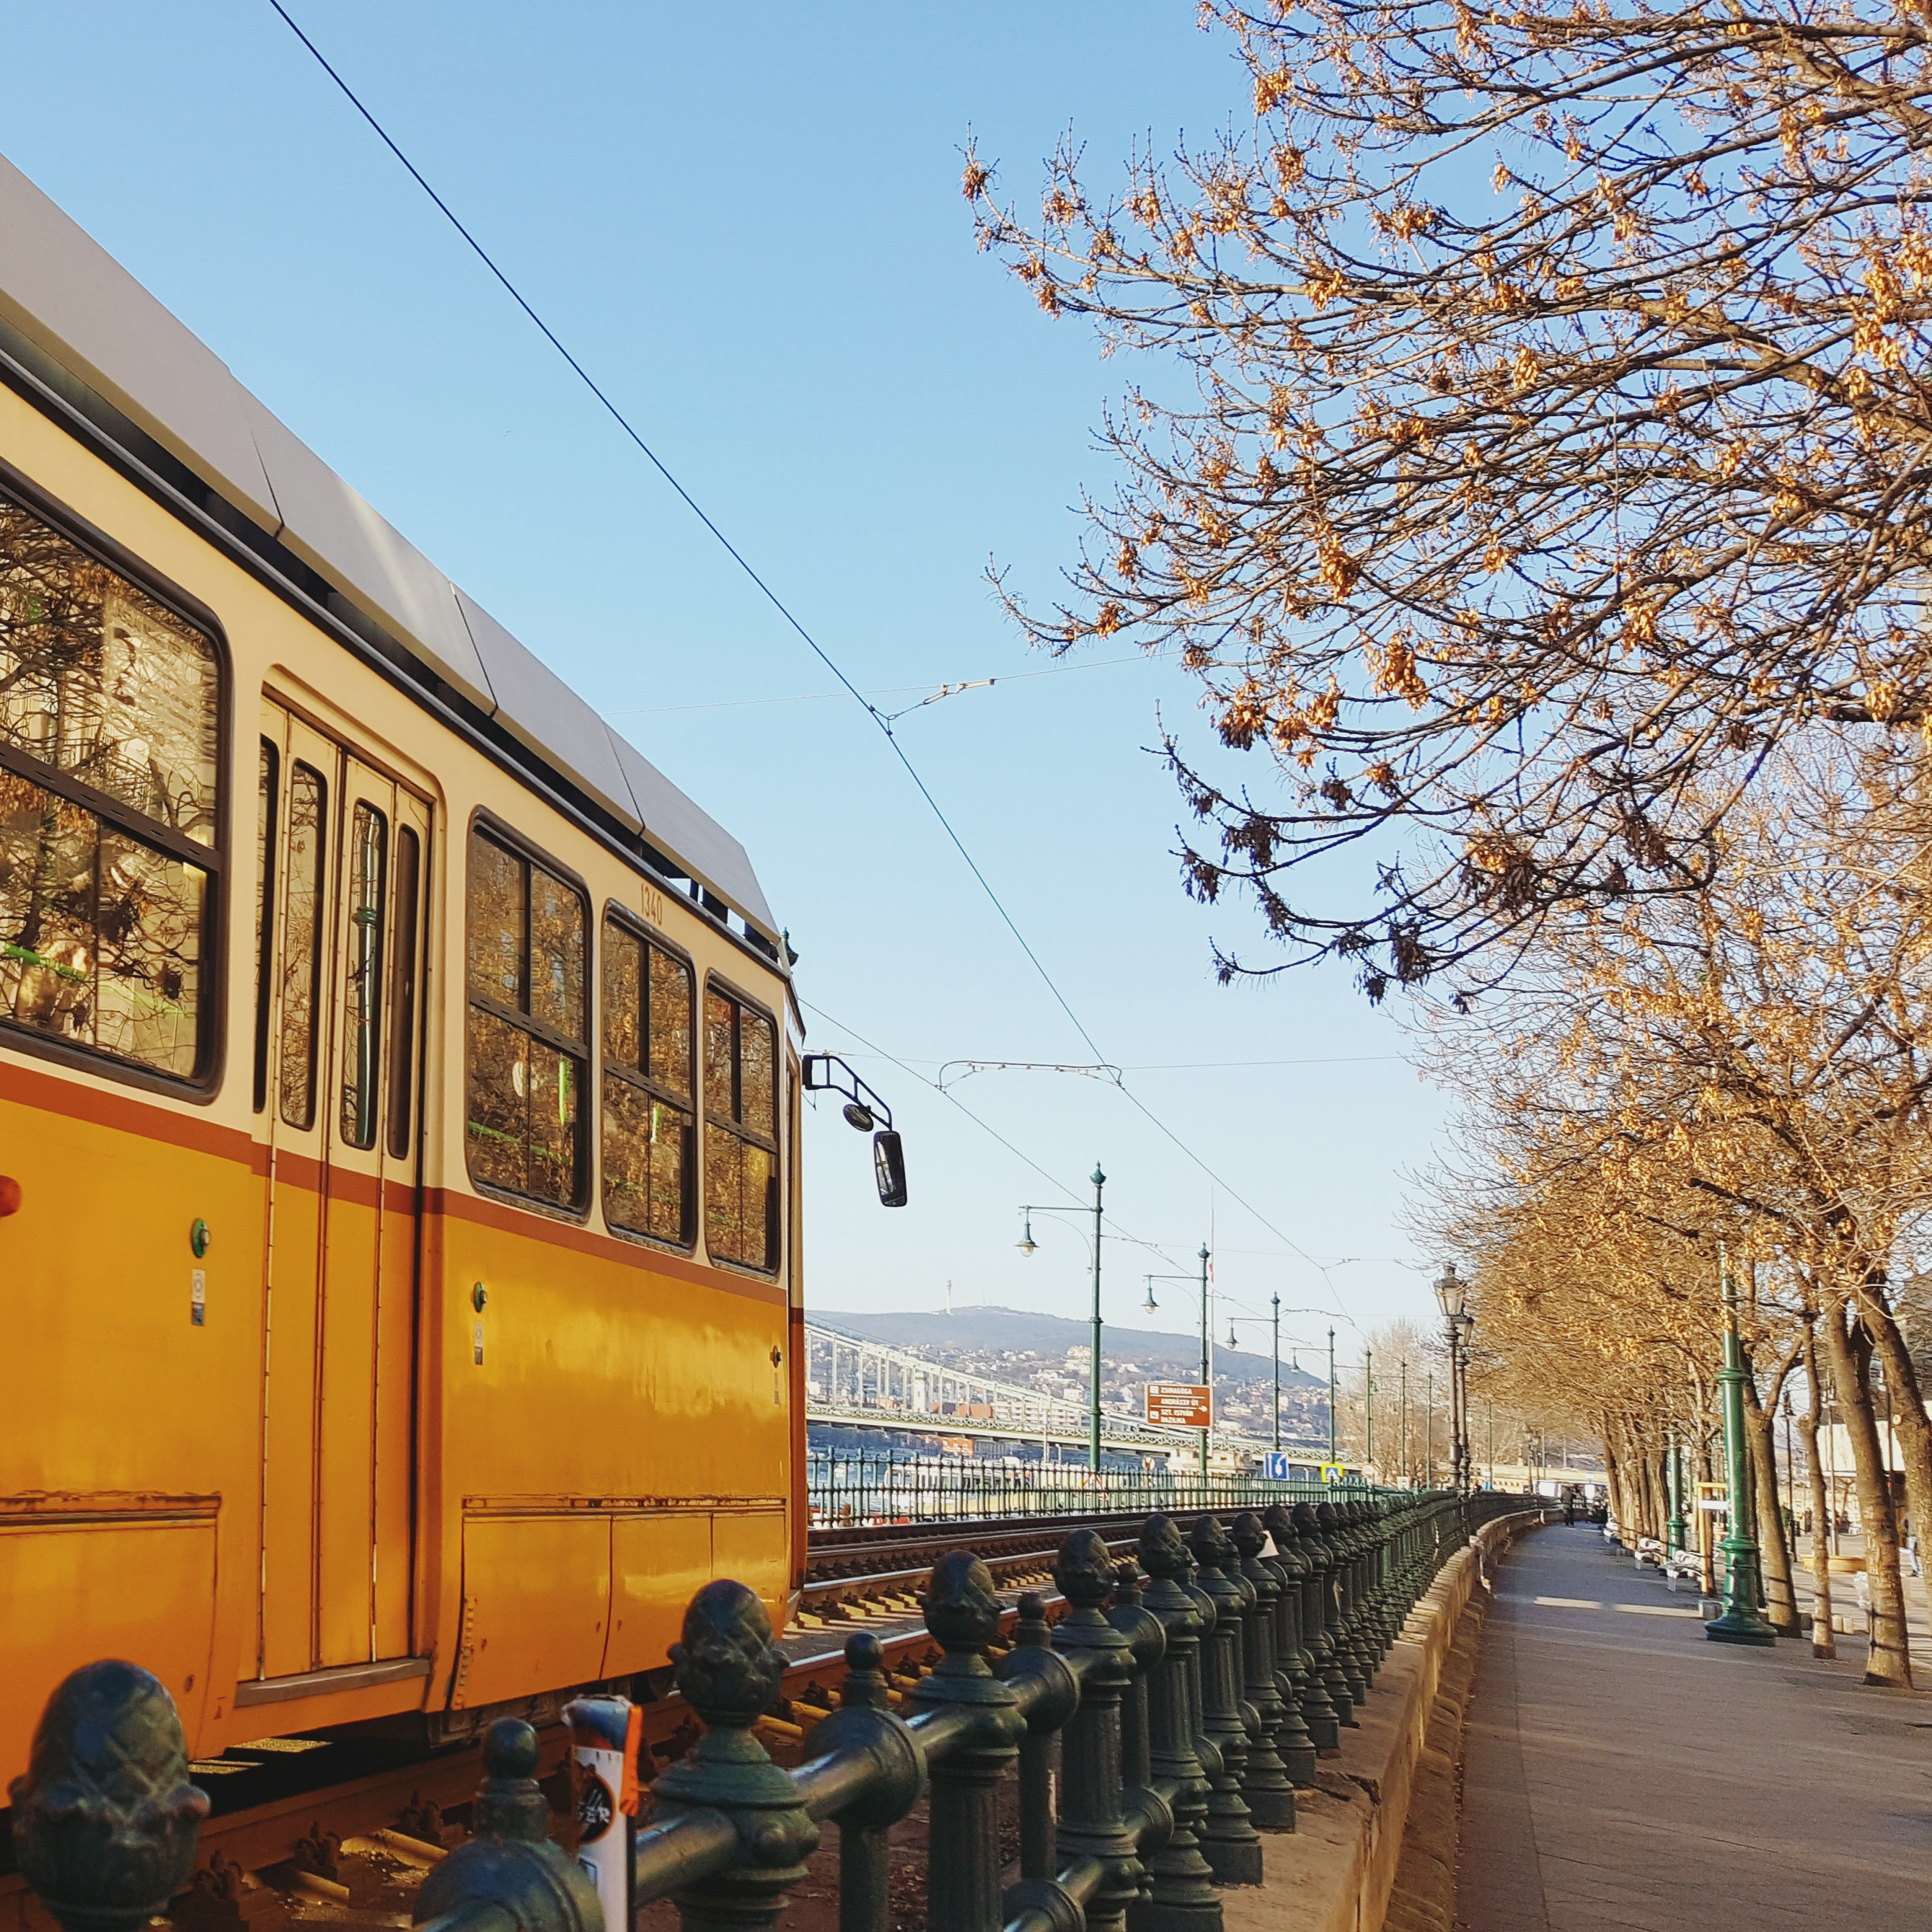 Everything you need to know before traveling to Budapest, including transport and currency! For more tips, info and hotspots, check out todoinbudapest.com.